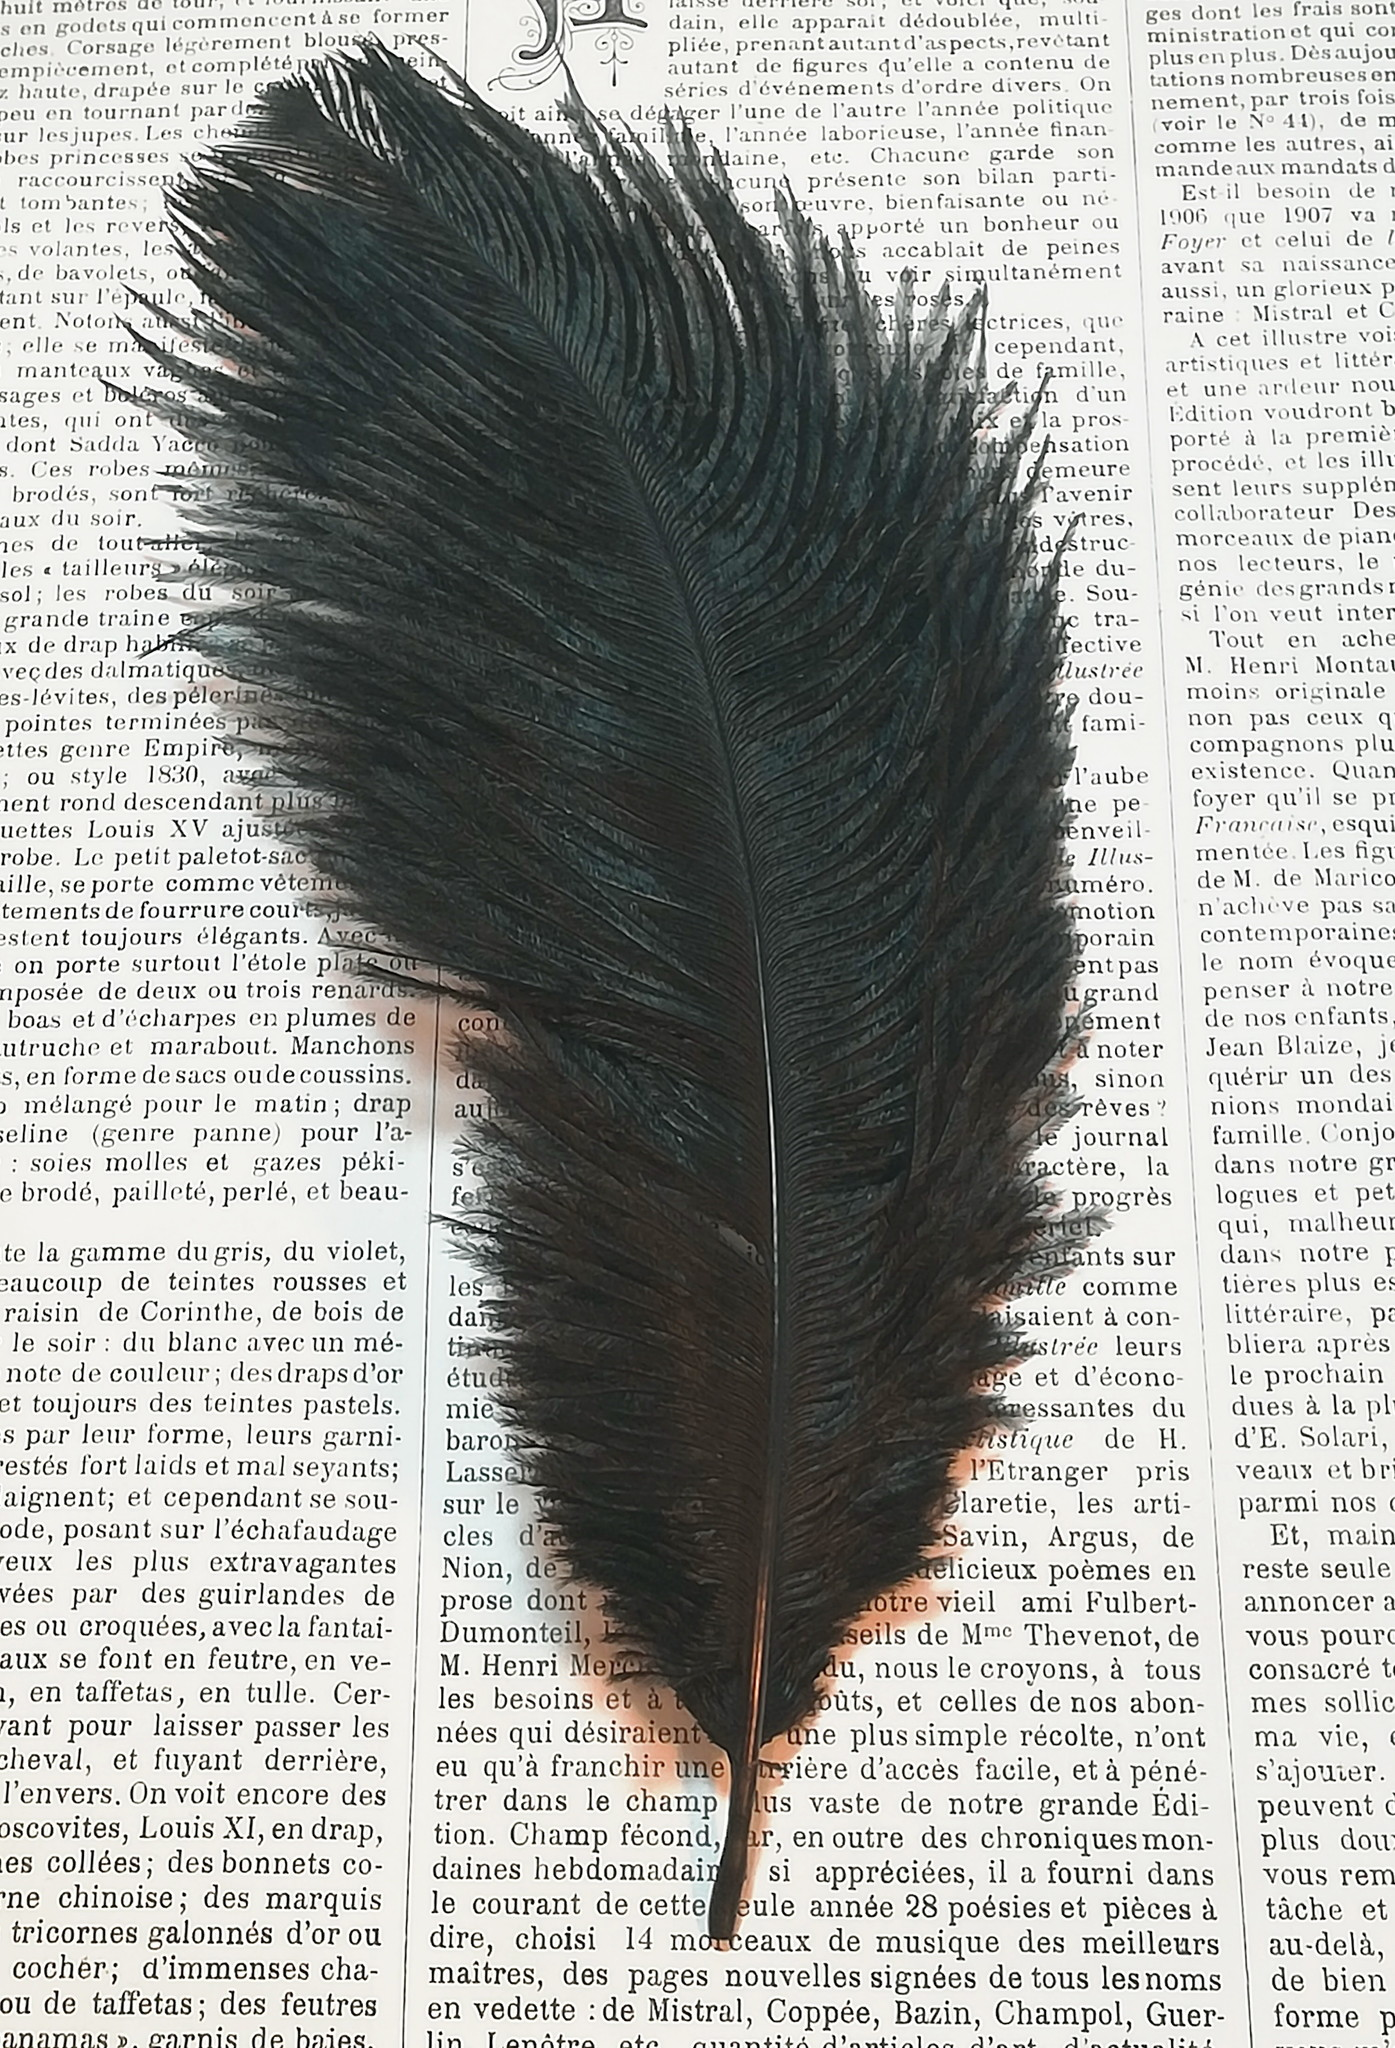 Ostrich feathers.